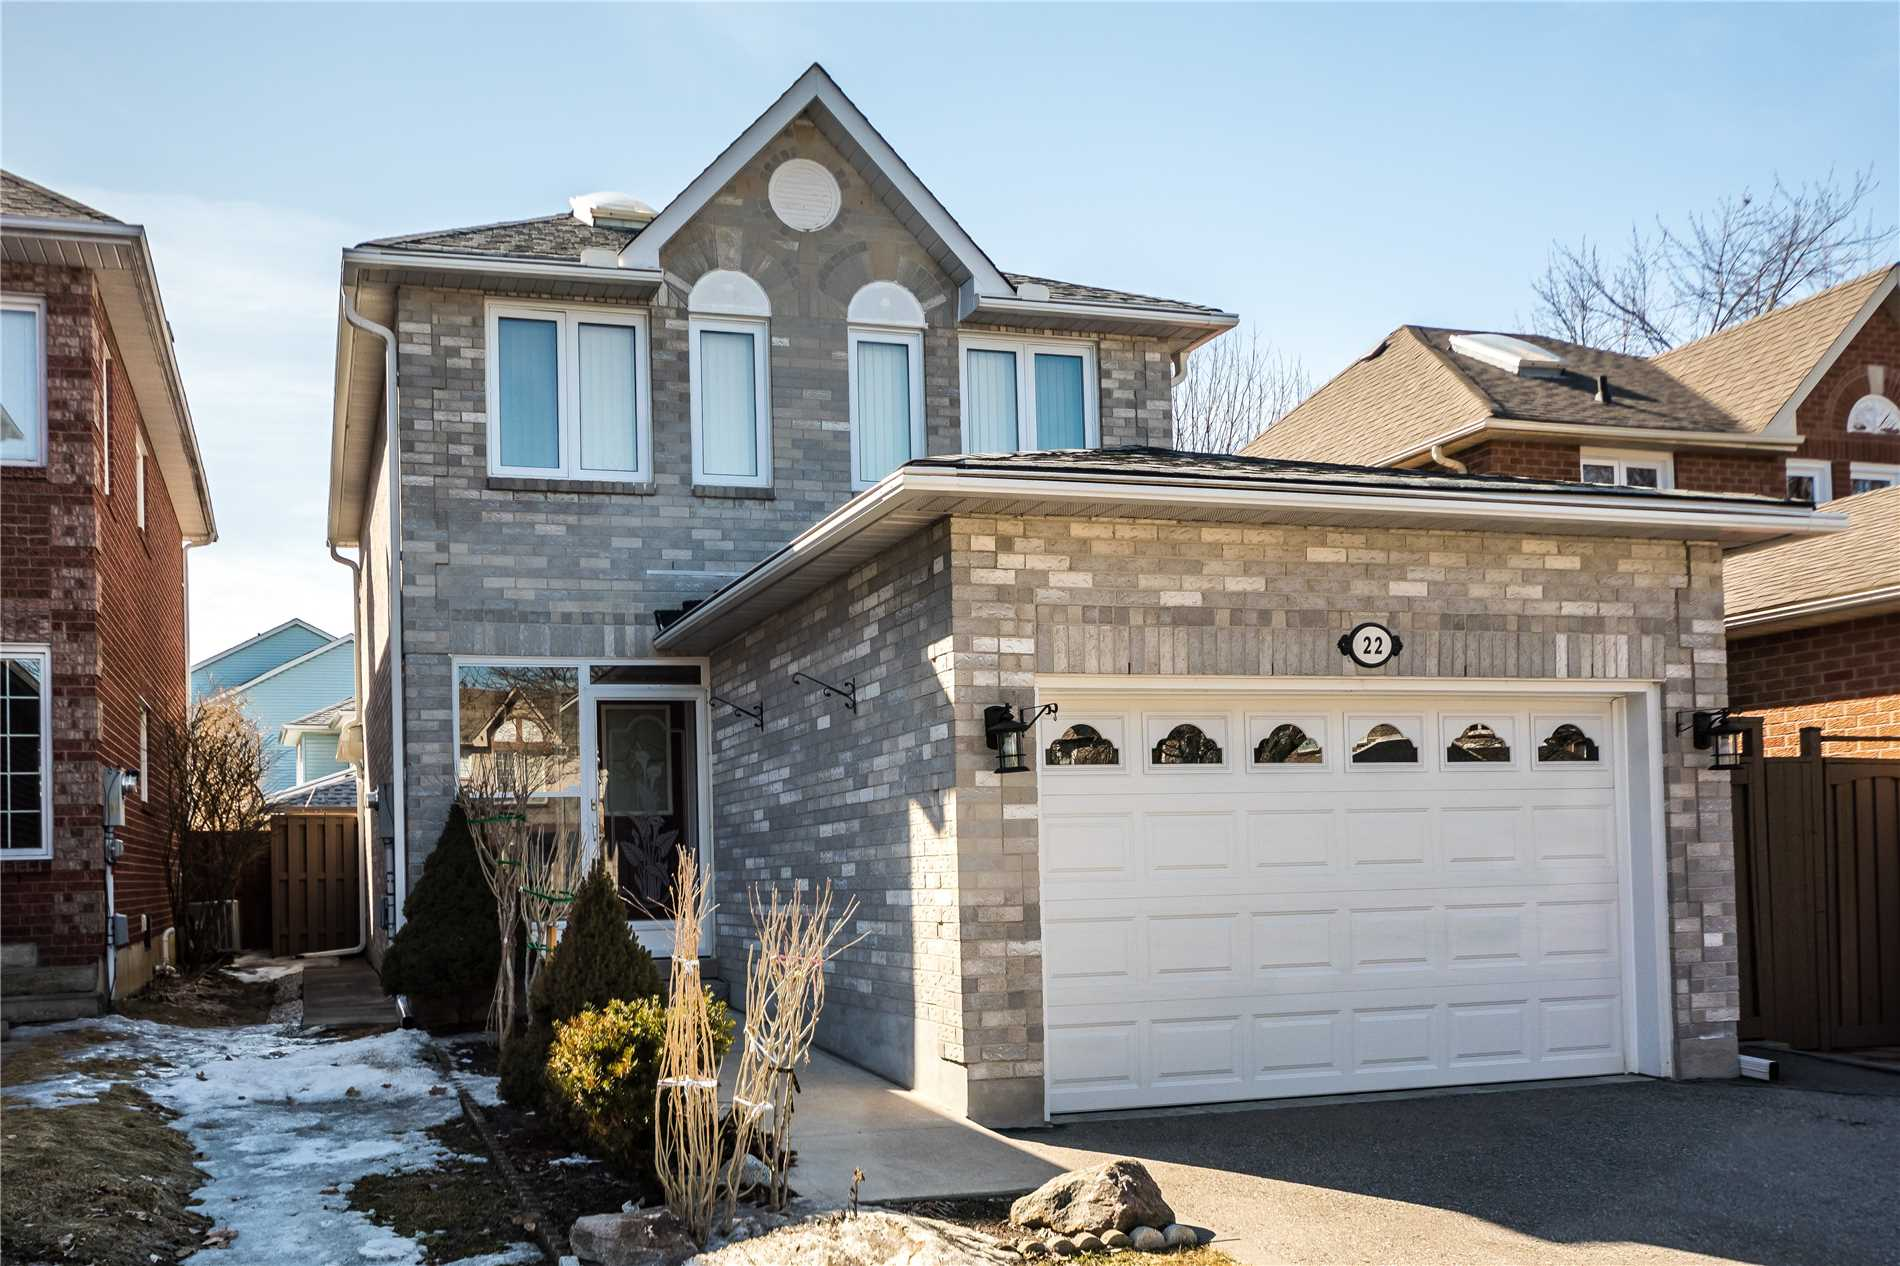 Never Leased Before, Beautifully Renovated And Clean Home In A Quiet Cul De Sac. New Kitchen, Hardwood Floors, 3 Bedrooms, Finished Basement, Well-Kept Yard. Excellent Location Surrounded By Schools, Childcare Centre, Parks, Trails, Amenities, Public Transit.